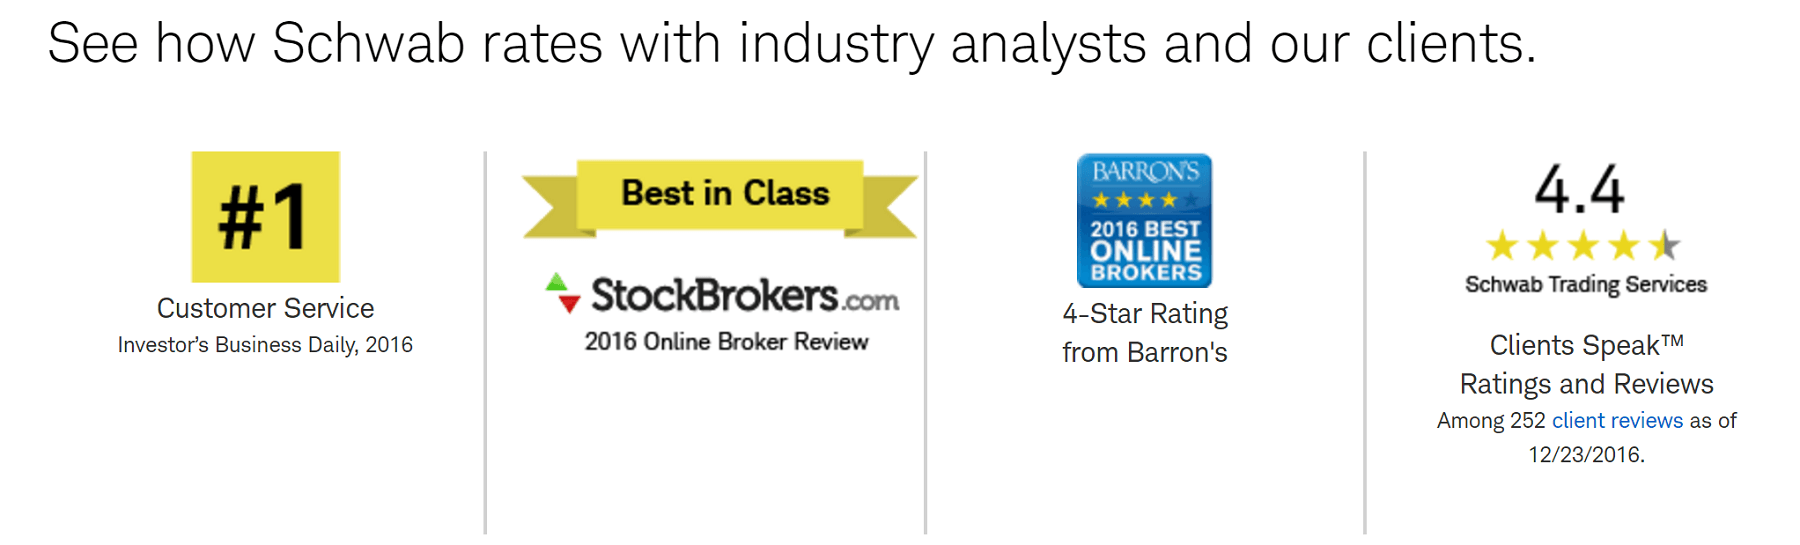 Charles Schwab Brokerage Bonus Review: $4 95 per online